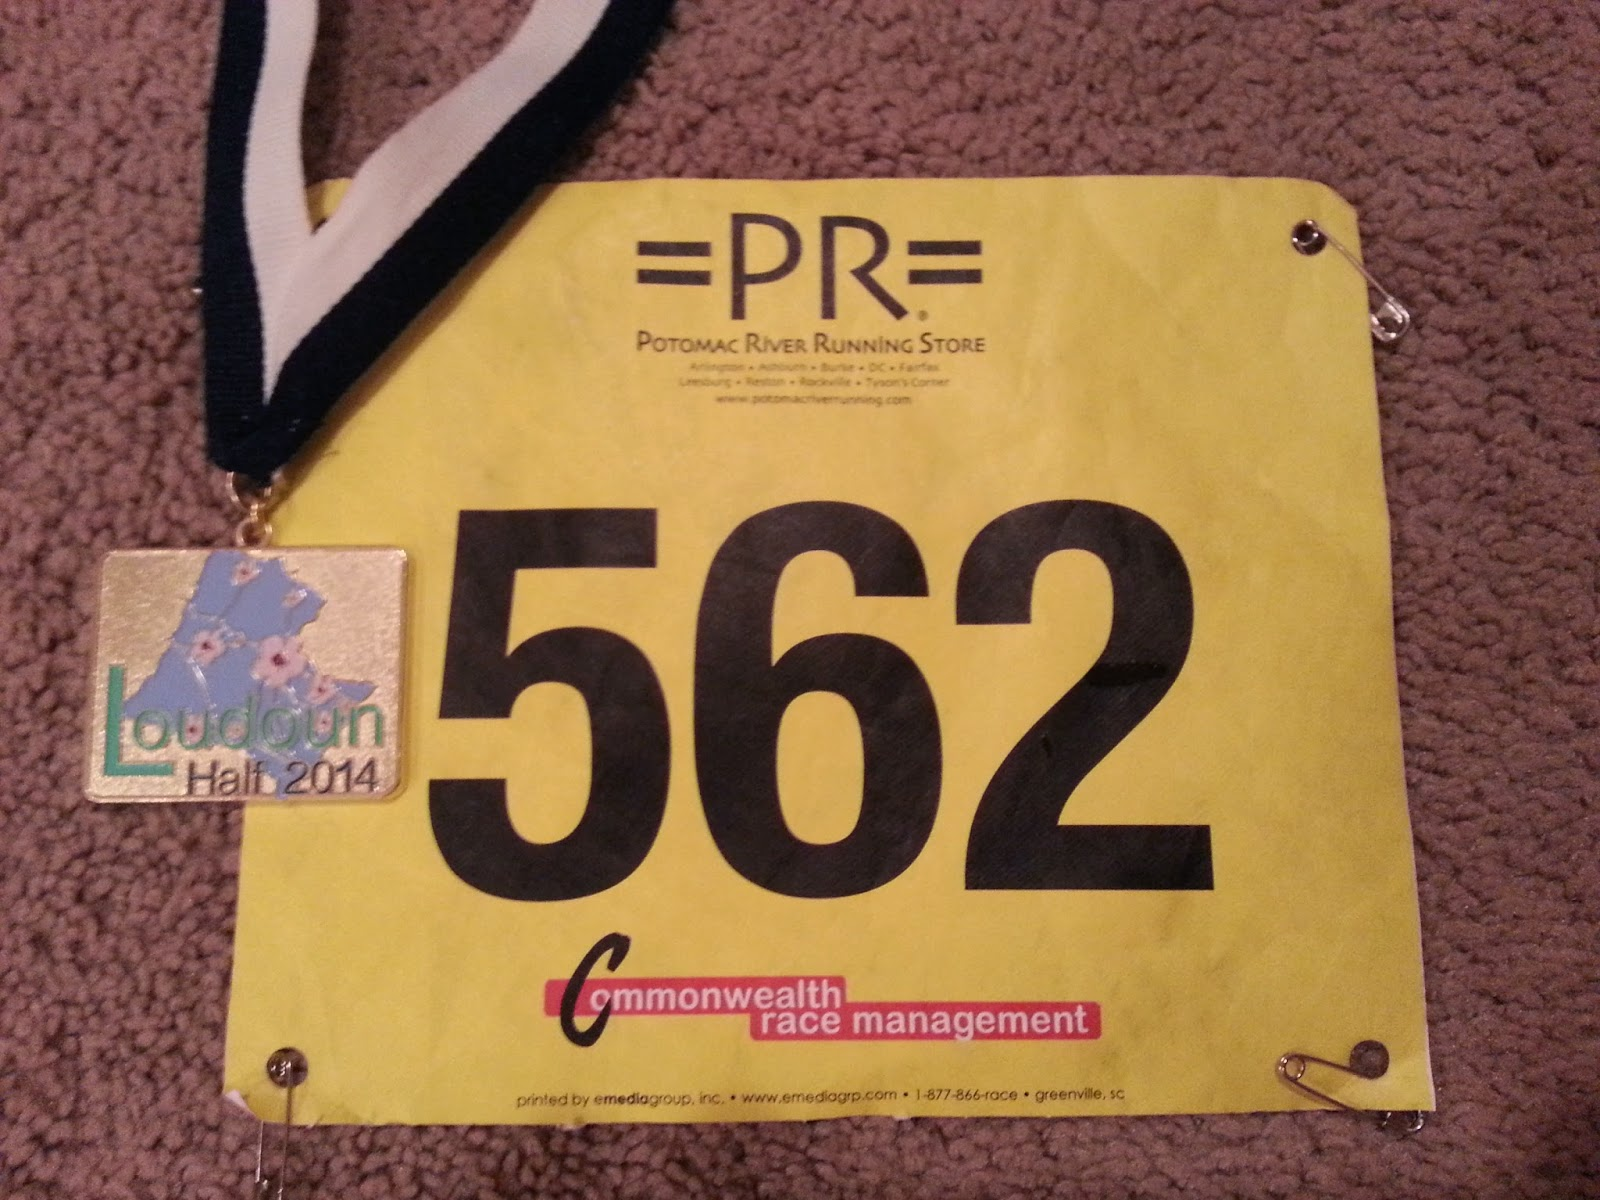 Loudoun Half bib and bling